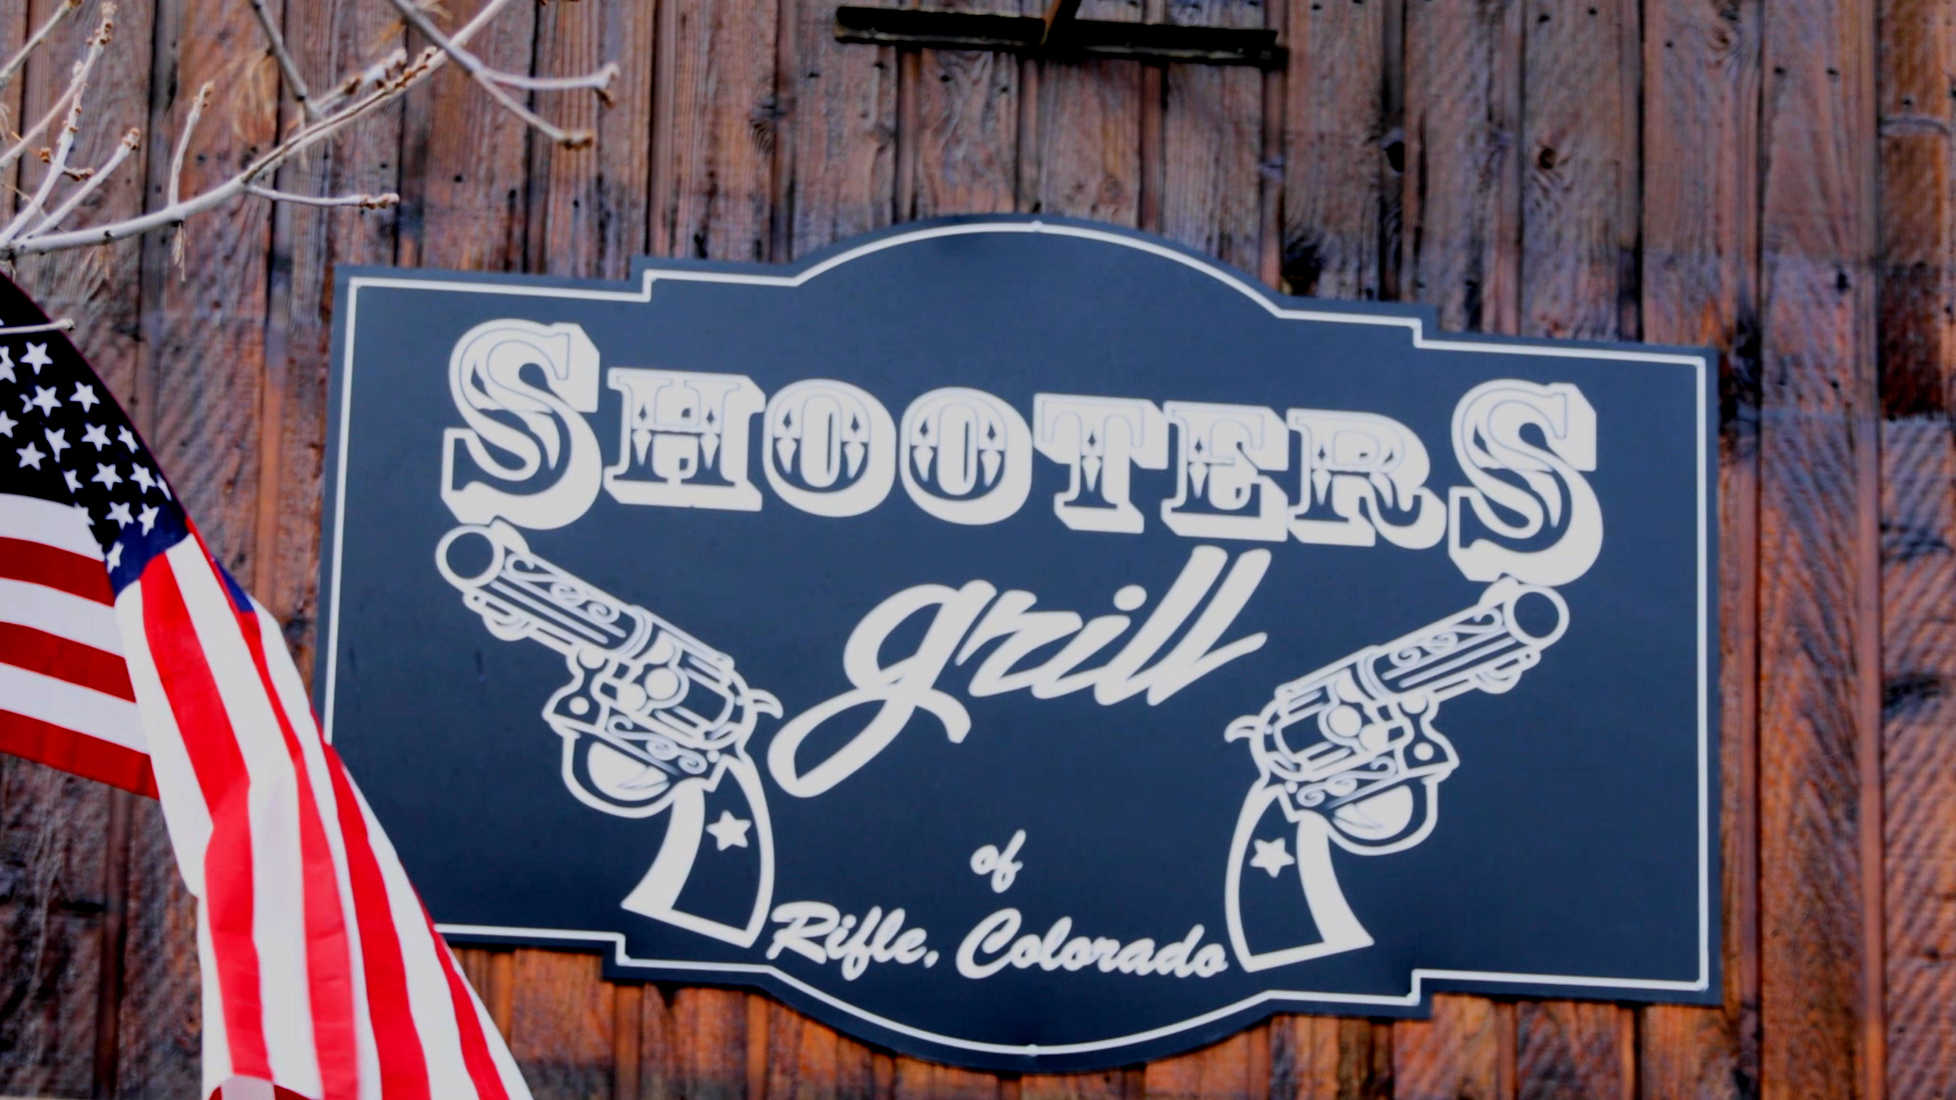 VIDEO: Every Waitress at this Colorado Restaurant Packs a Gun